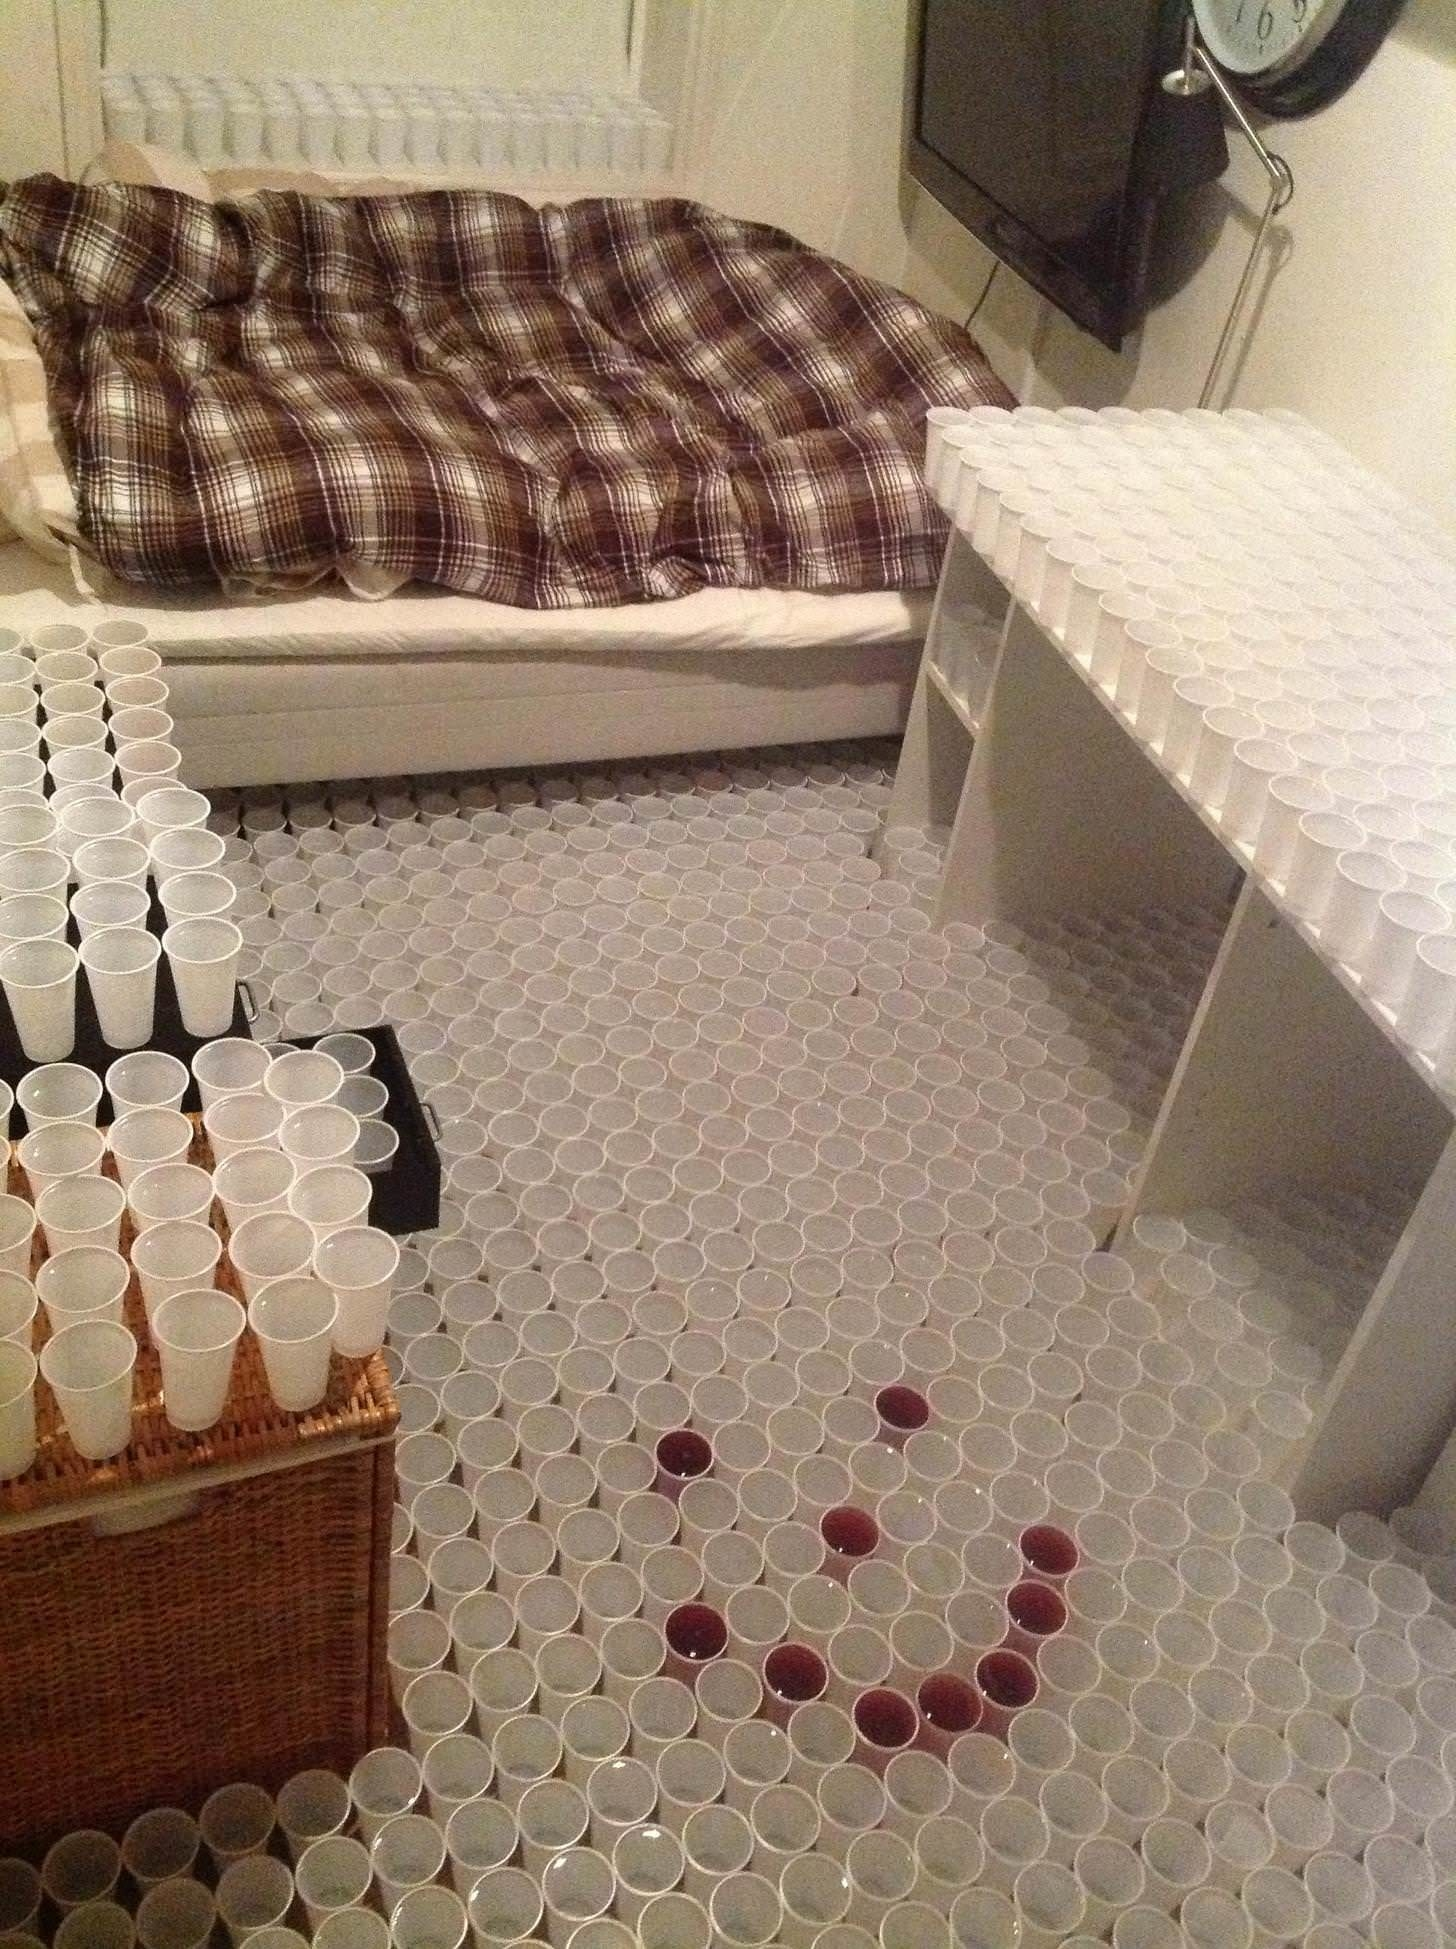 19 Funny Pranks That Instantly Transport You Back To High School